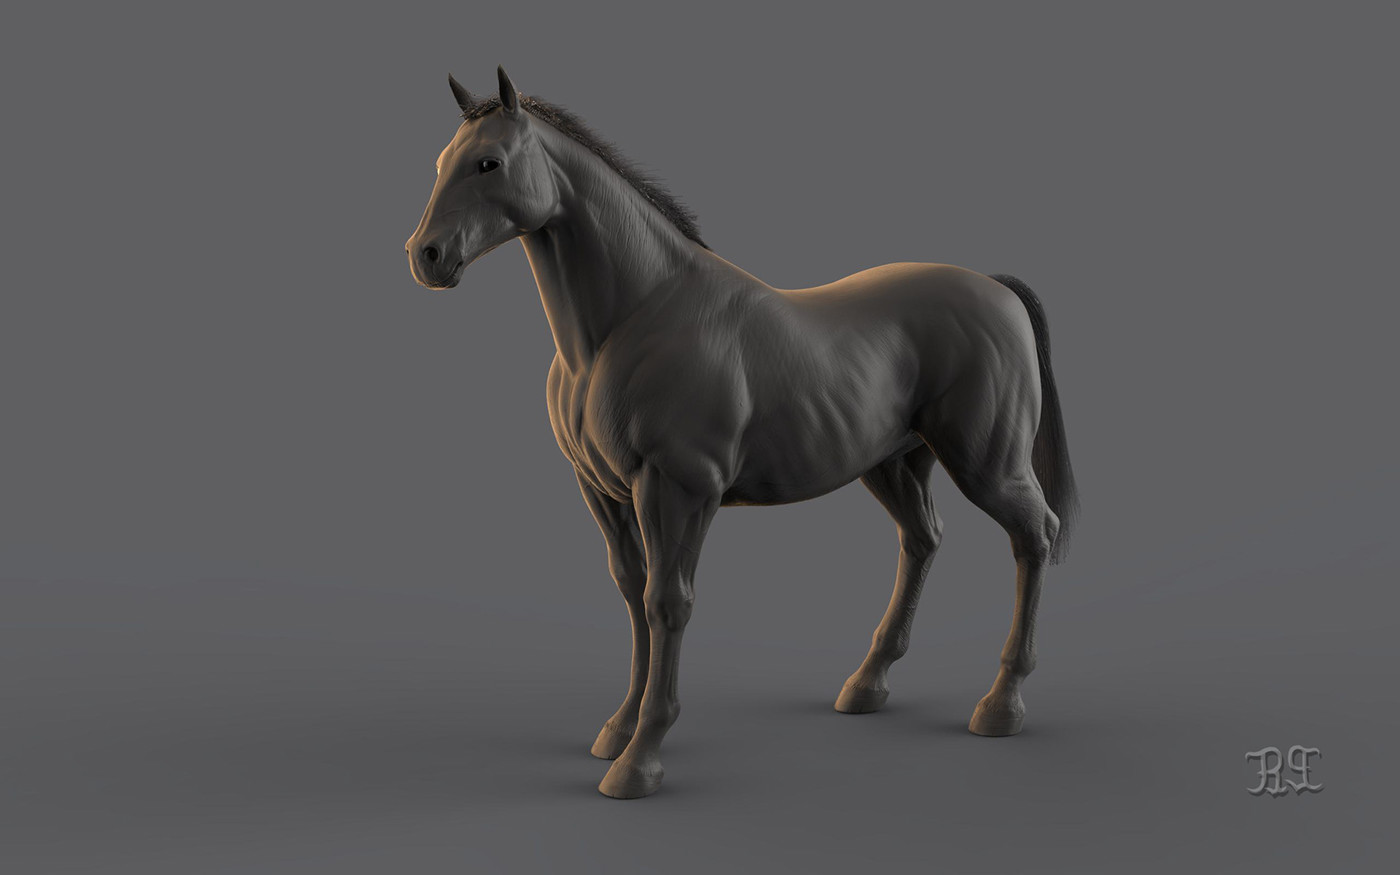 3D Horse anatomy Study in ZBRUSH on Behance